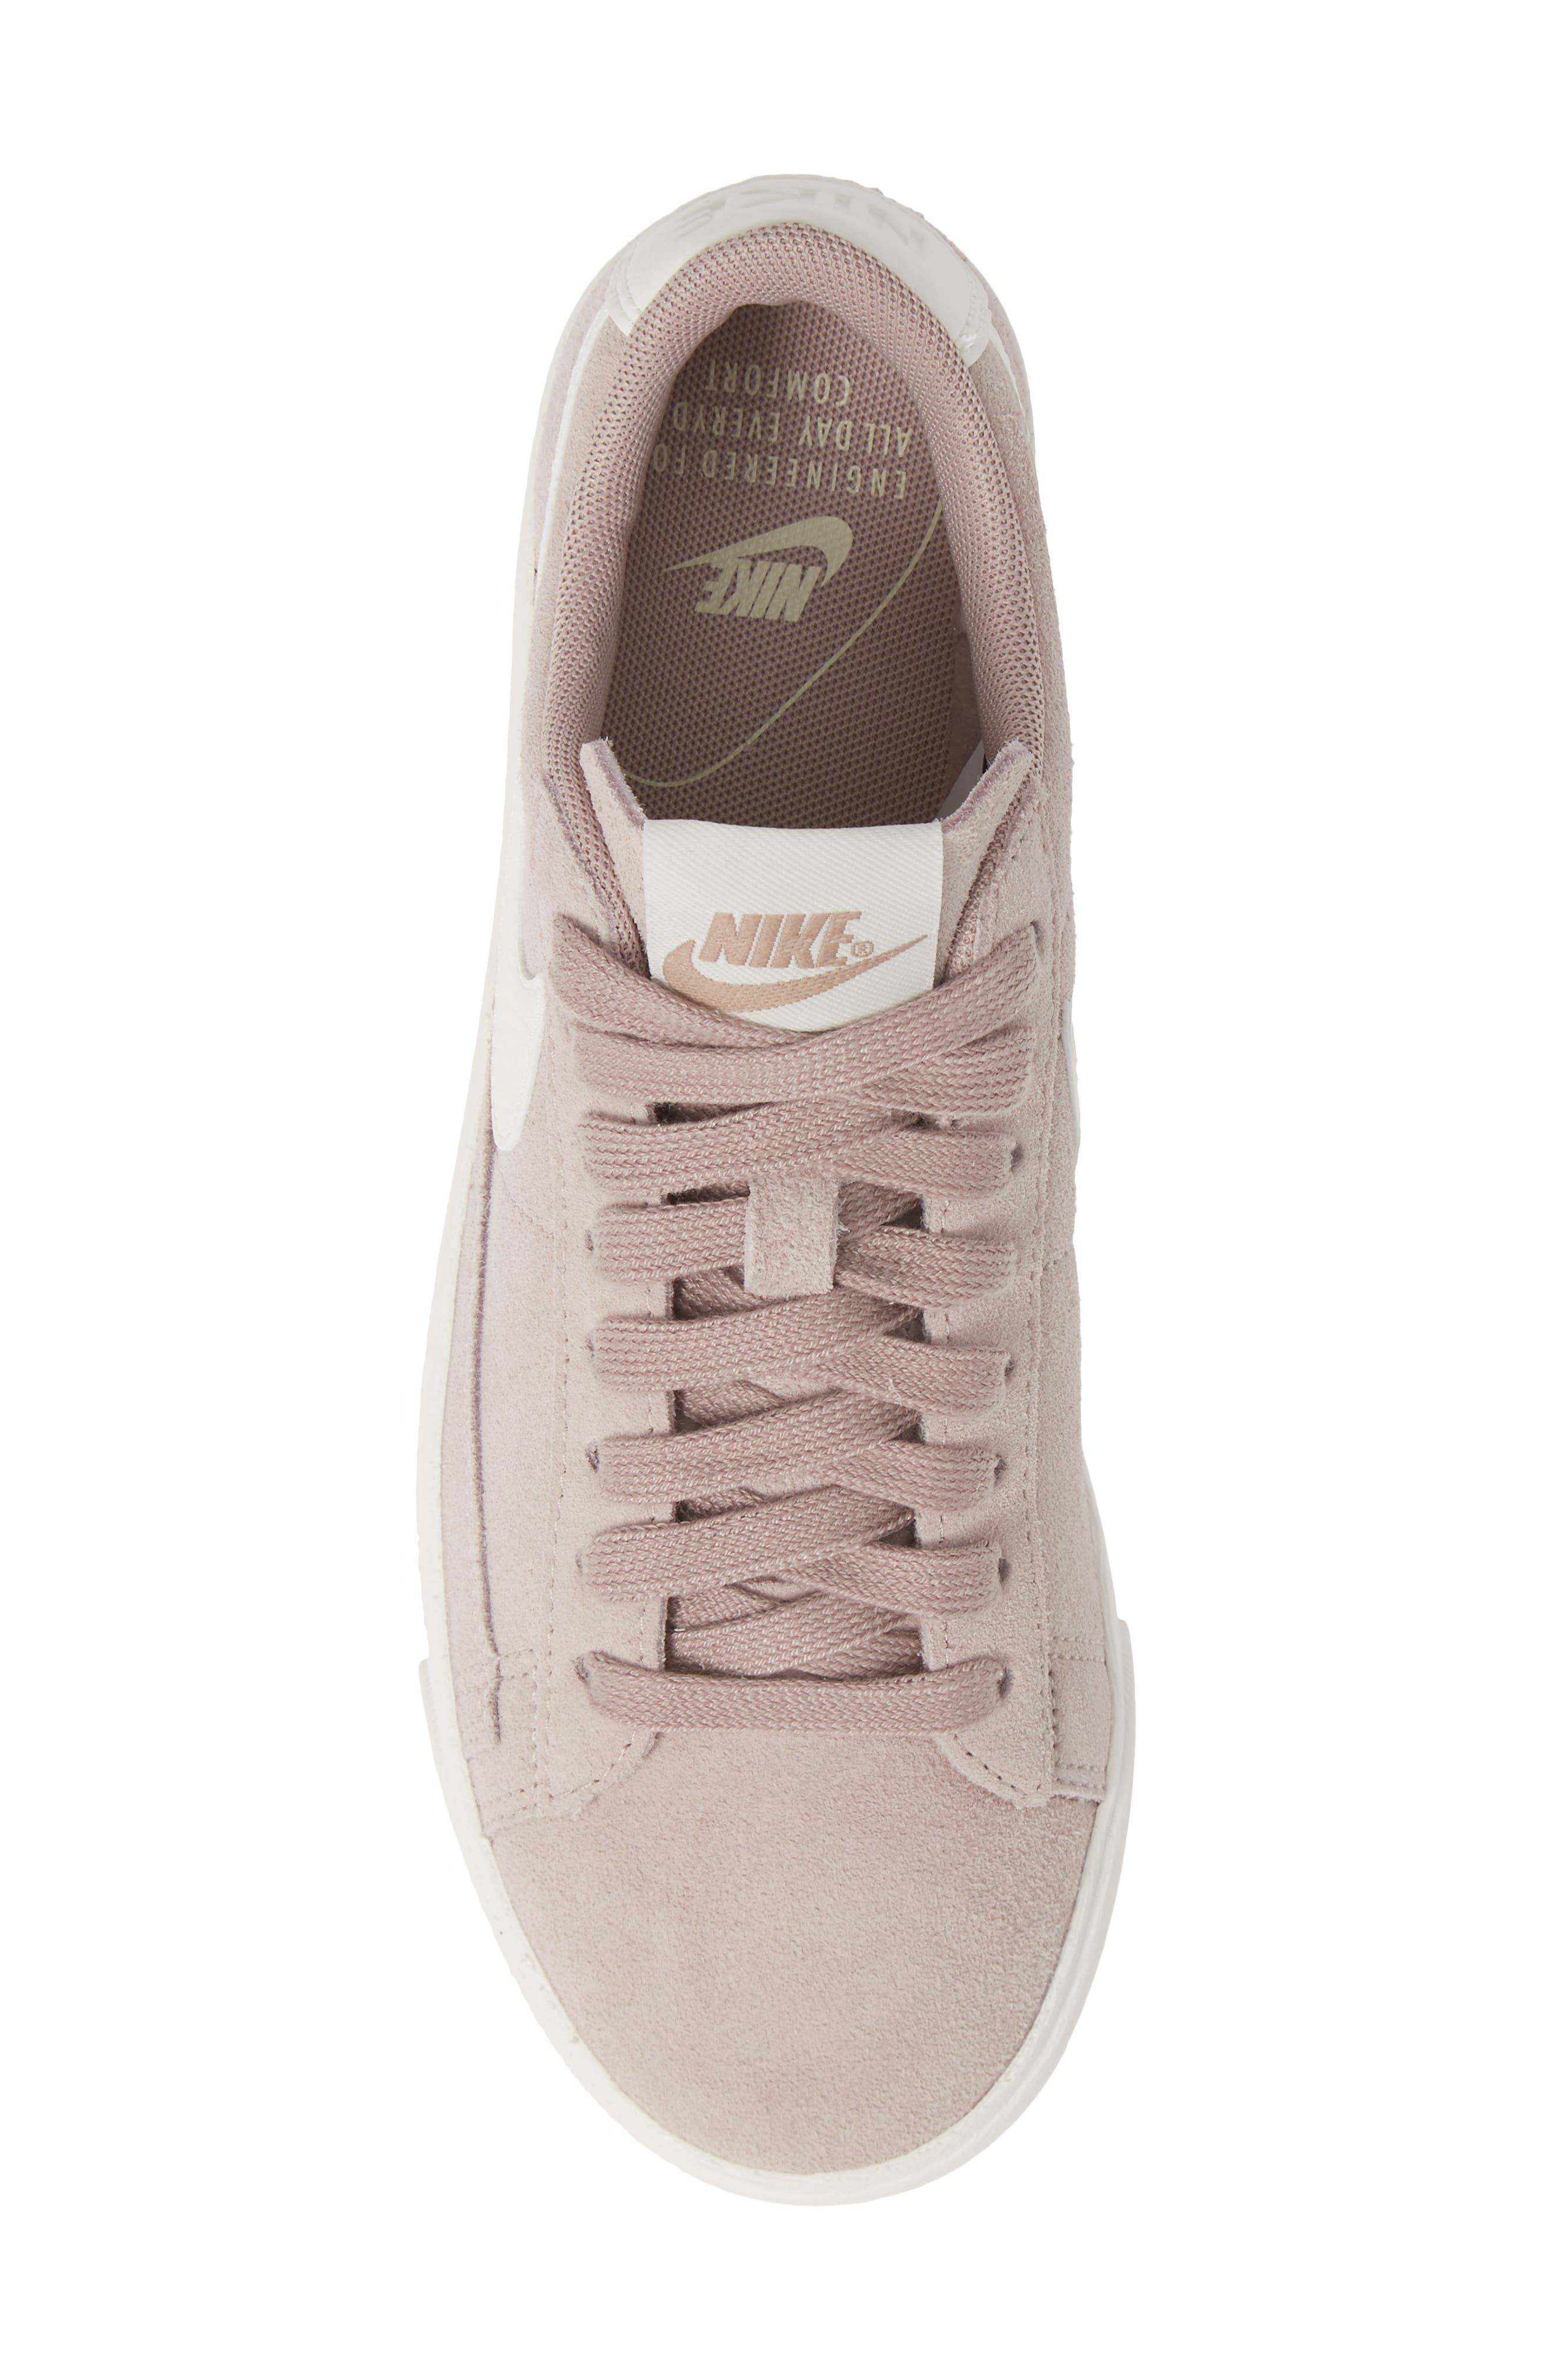 Blazer Low Sneaker,                             Alternate thumbnail 4, color,                             Diffused Taupe/ Sail